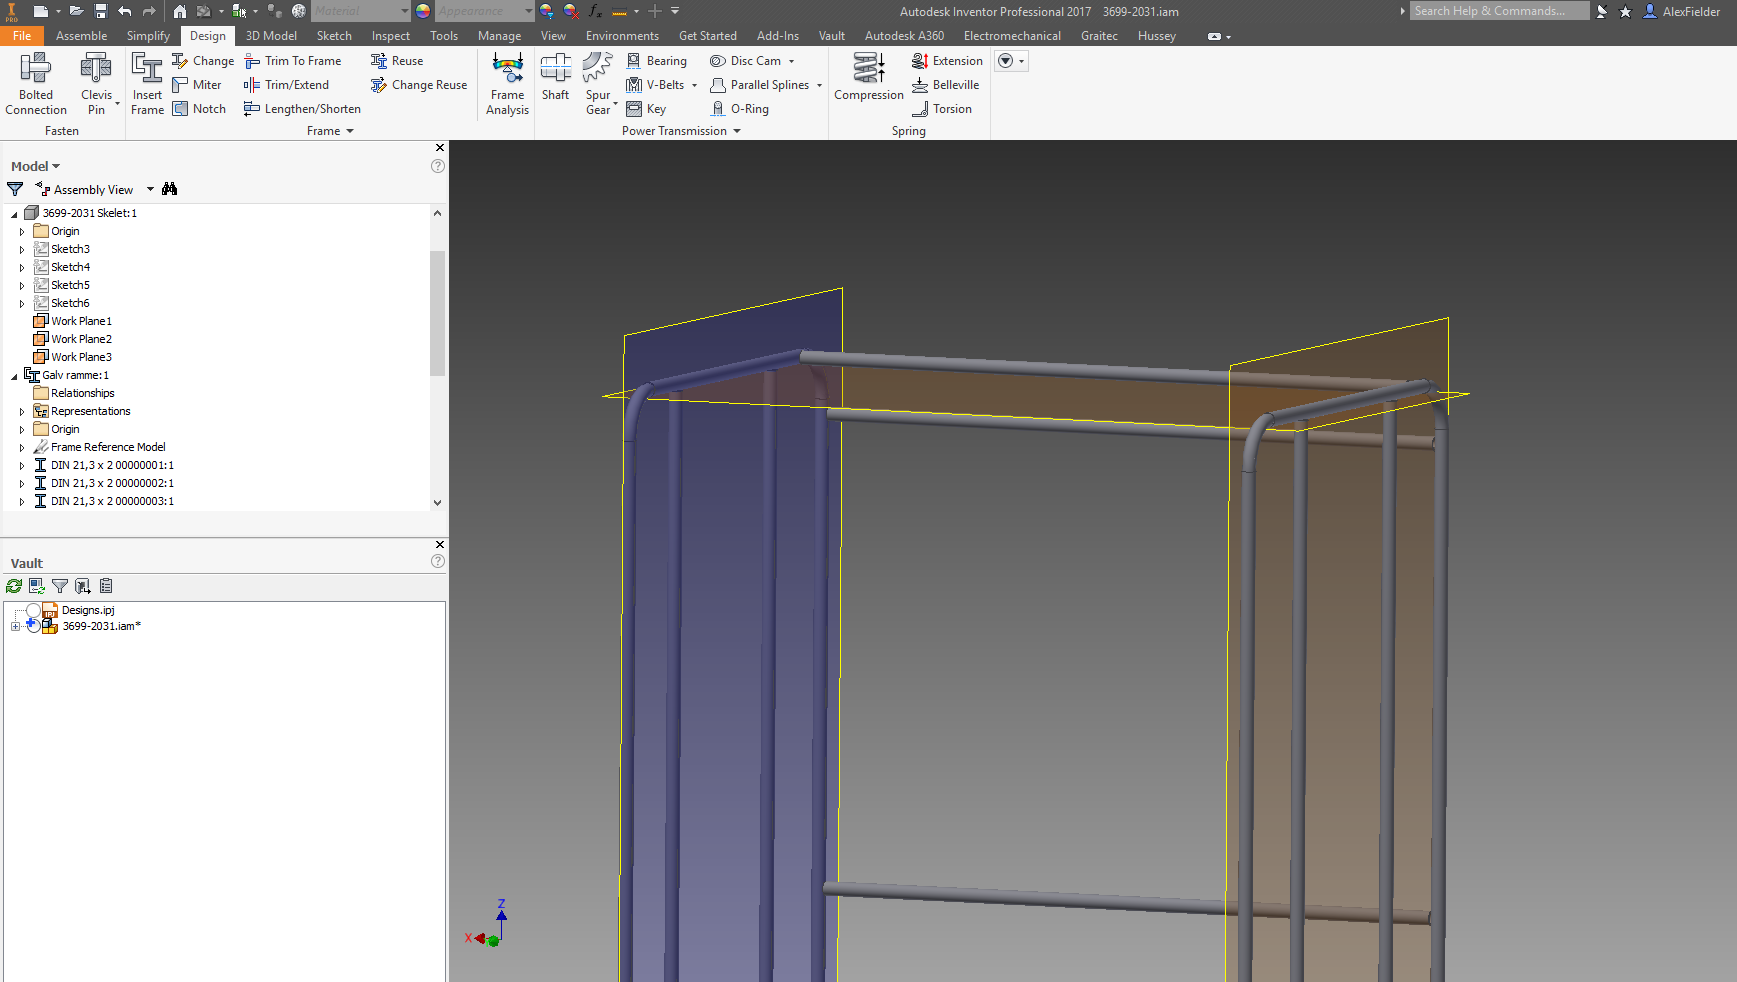 Trim to Frame not working with pipes - Autodesk Community- Inventor